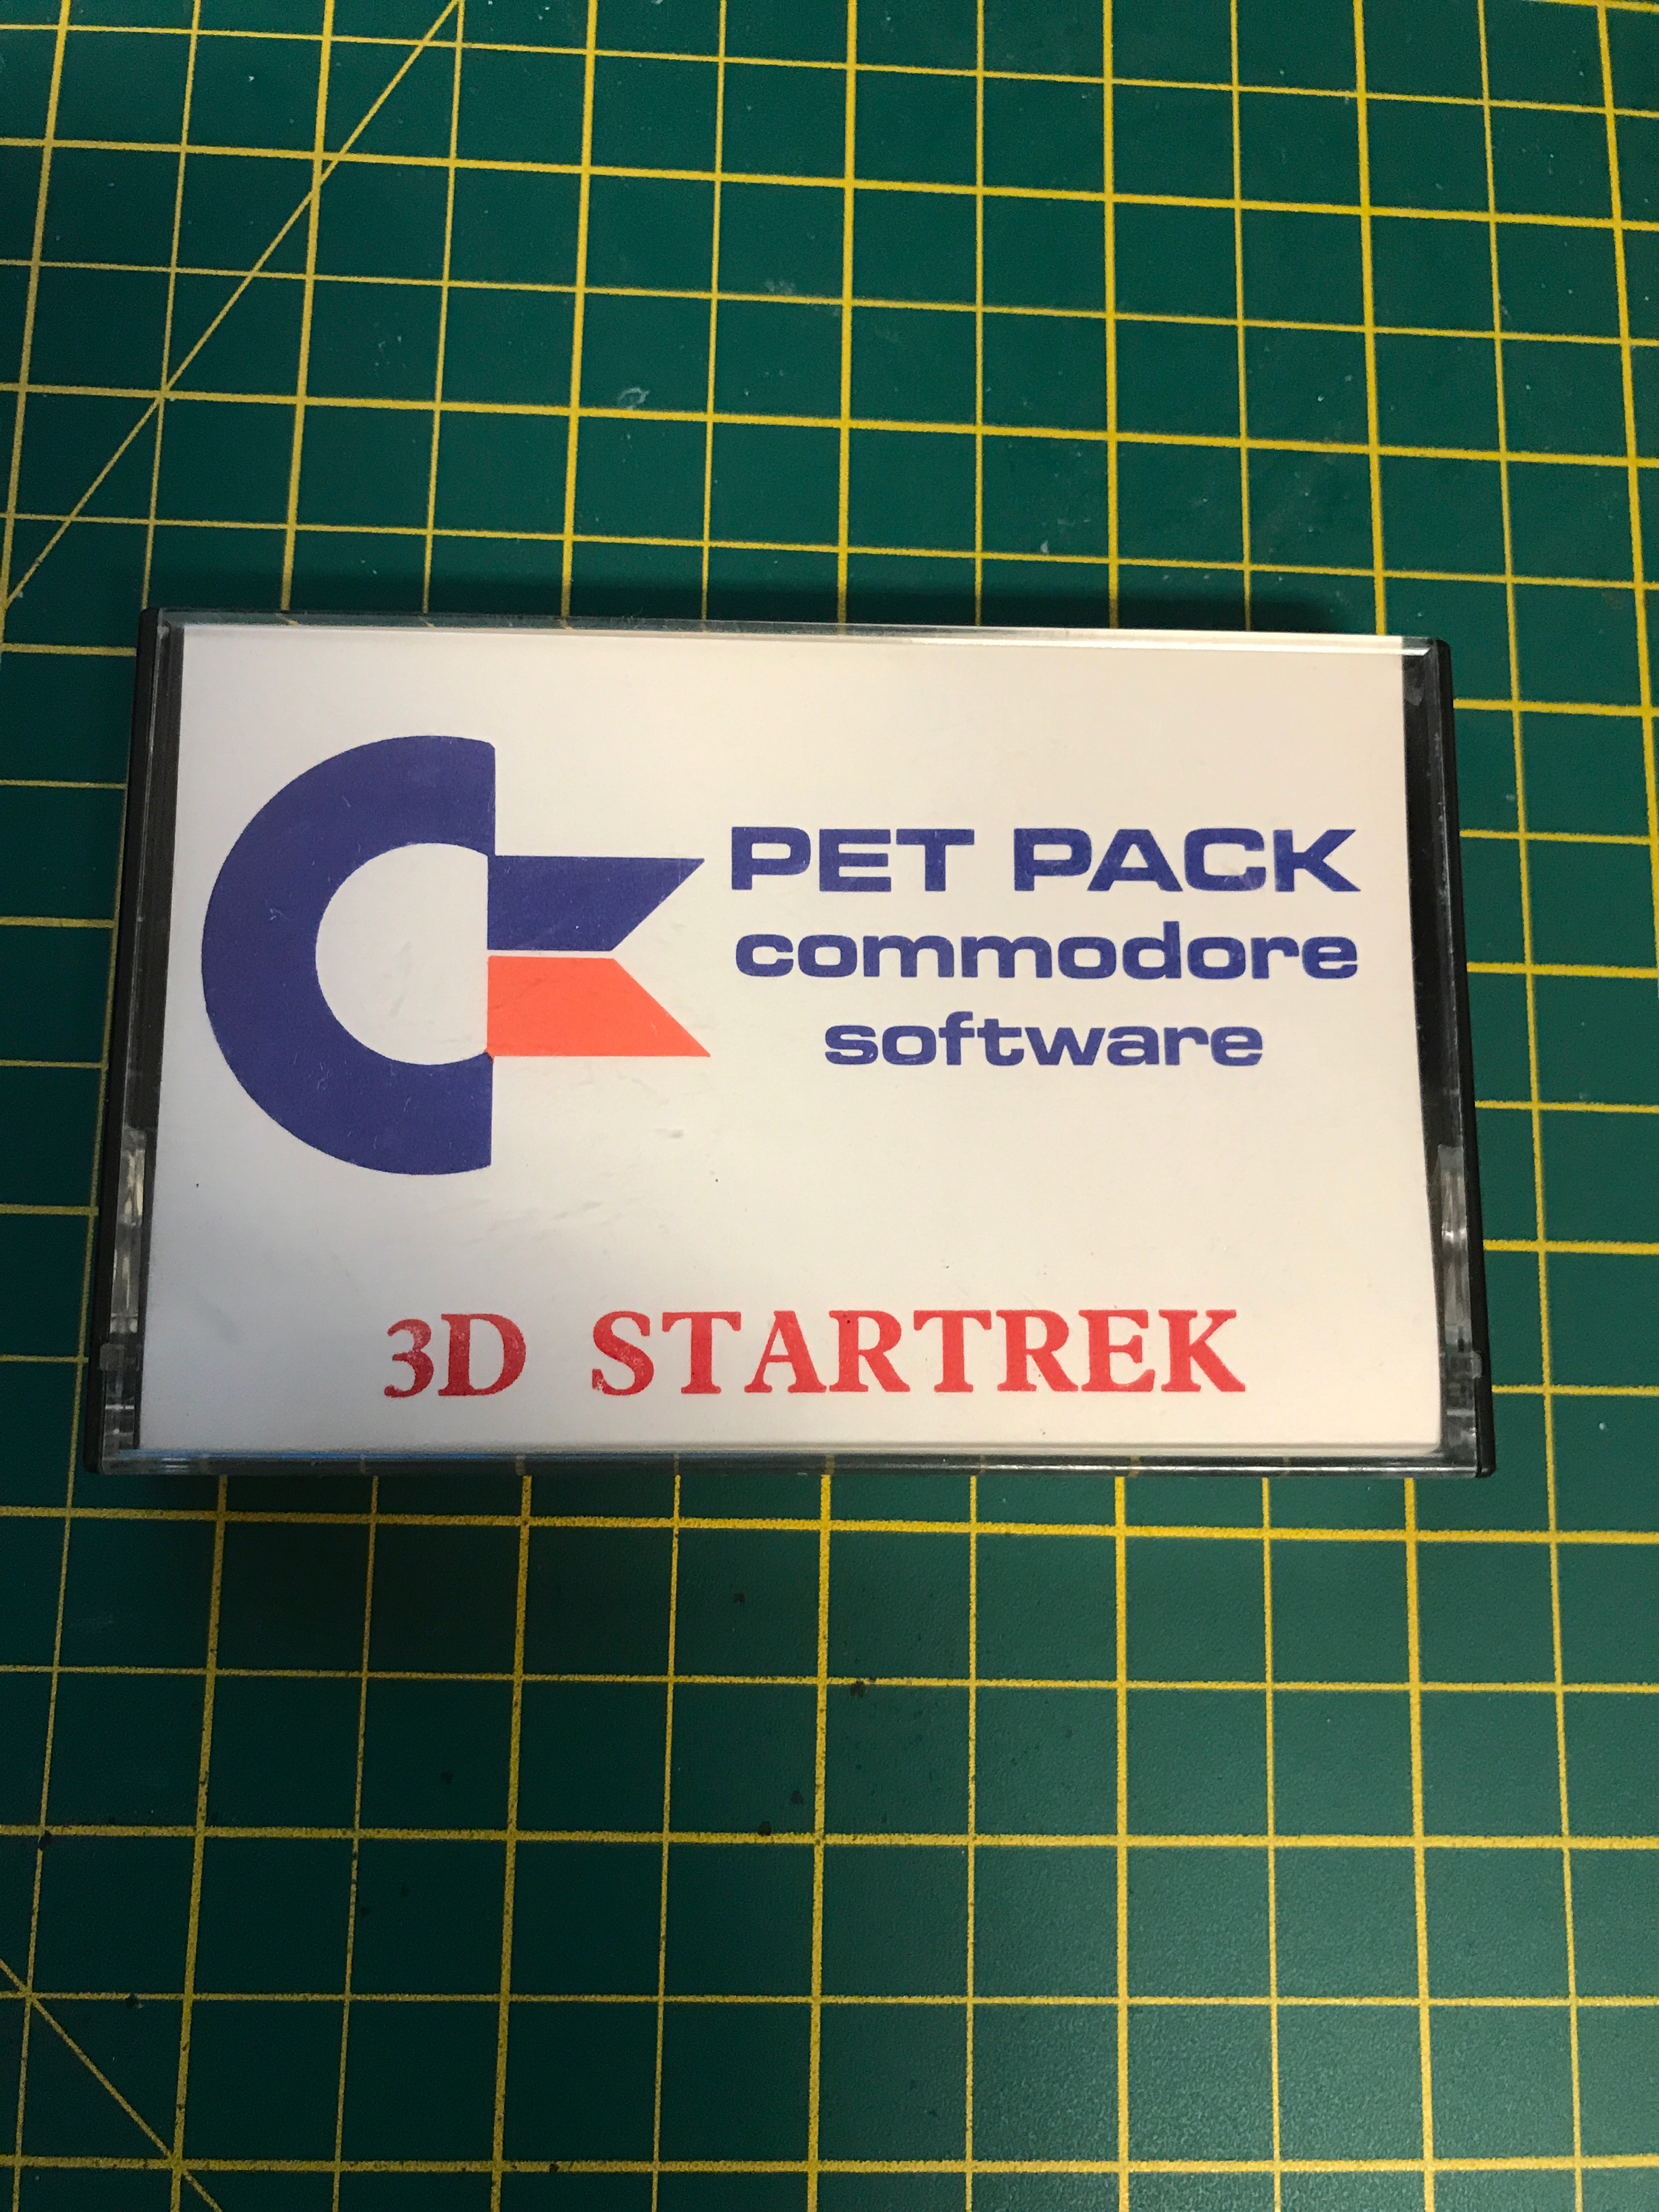 Commodore PET star trek 3d original